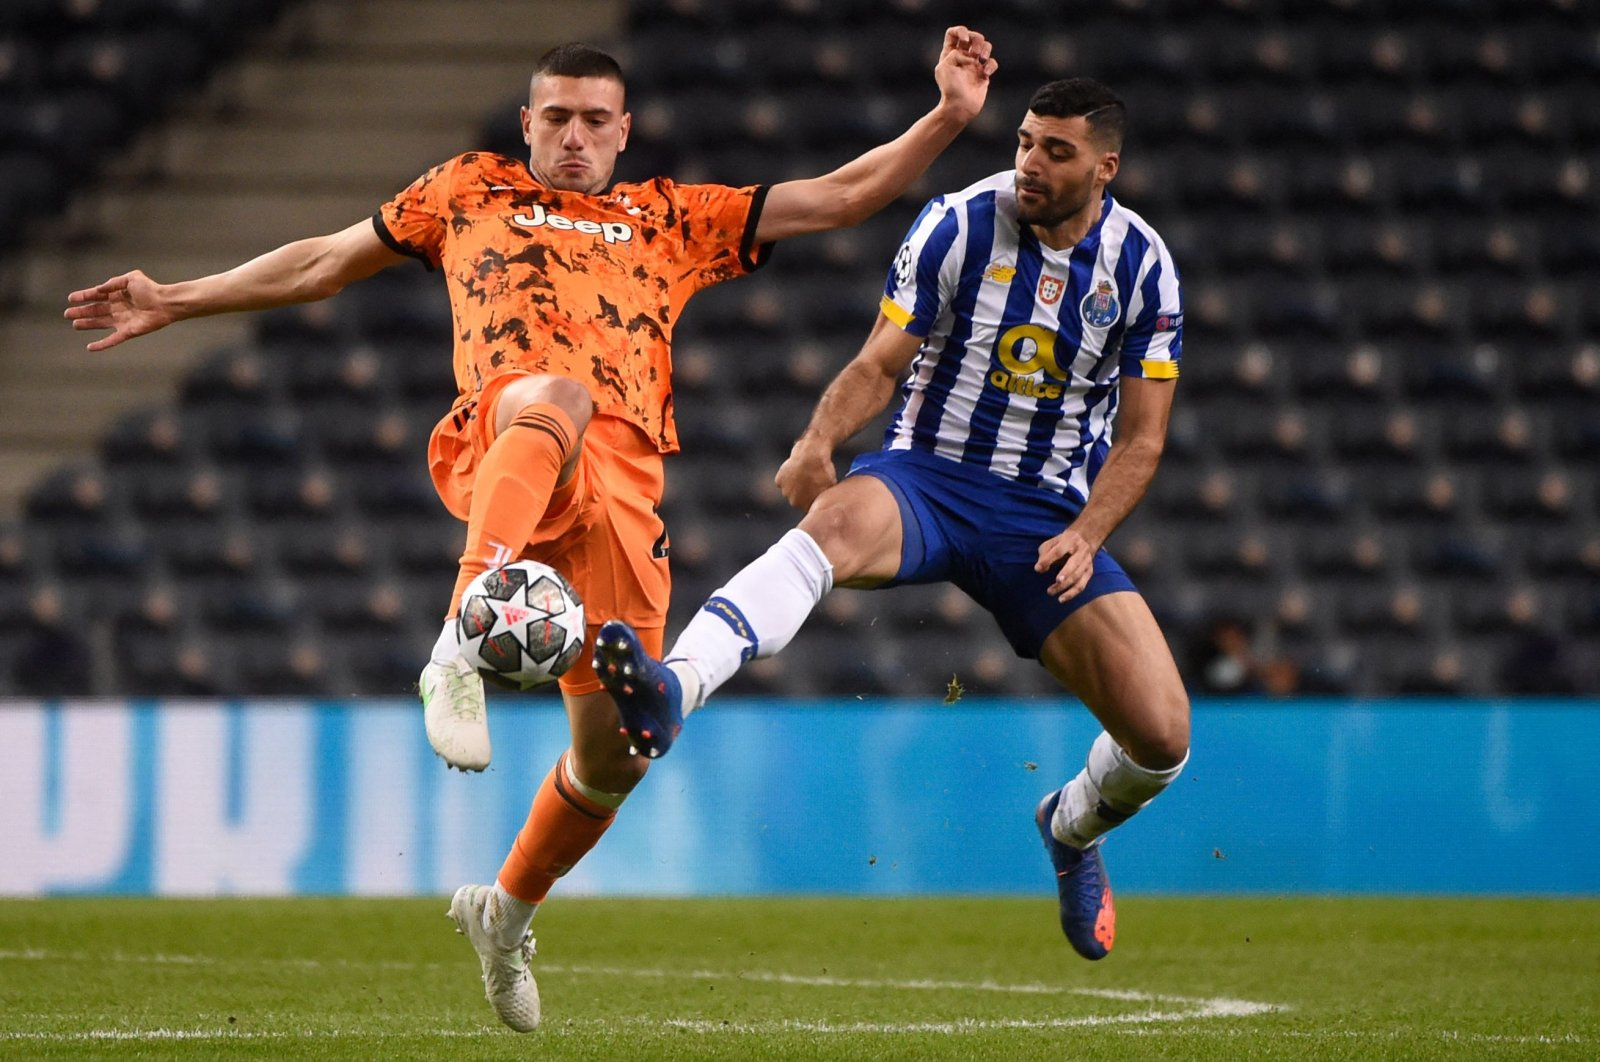 Juventus' Turkish defender Merih Demiral (L) vies with FC Porto's Iranian forward Mehdi Taremi during the UEFA Champions League round of 16 first leg match at the Dragao stadium in Porto, Feb. 17, 2021. (AFP Photo)